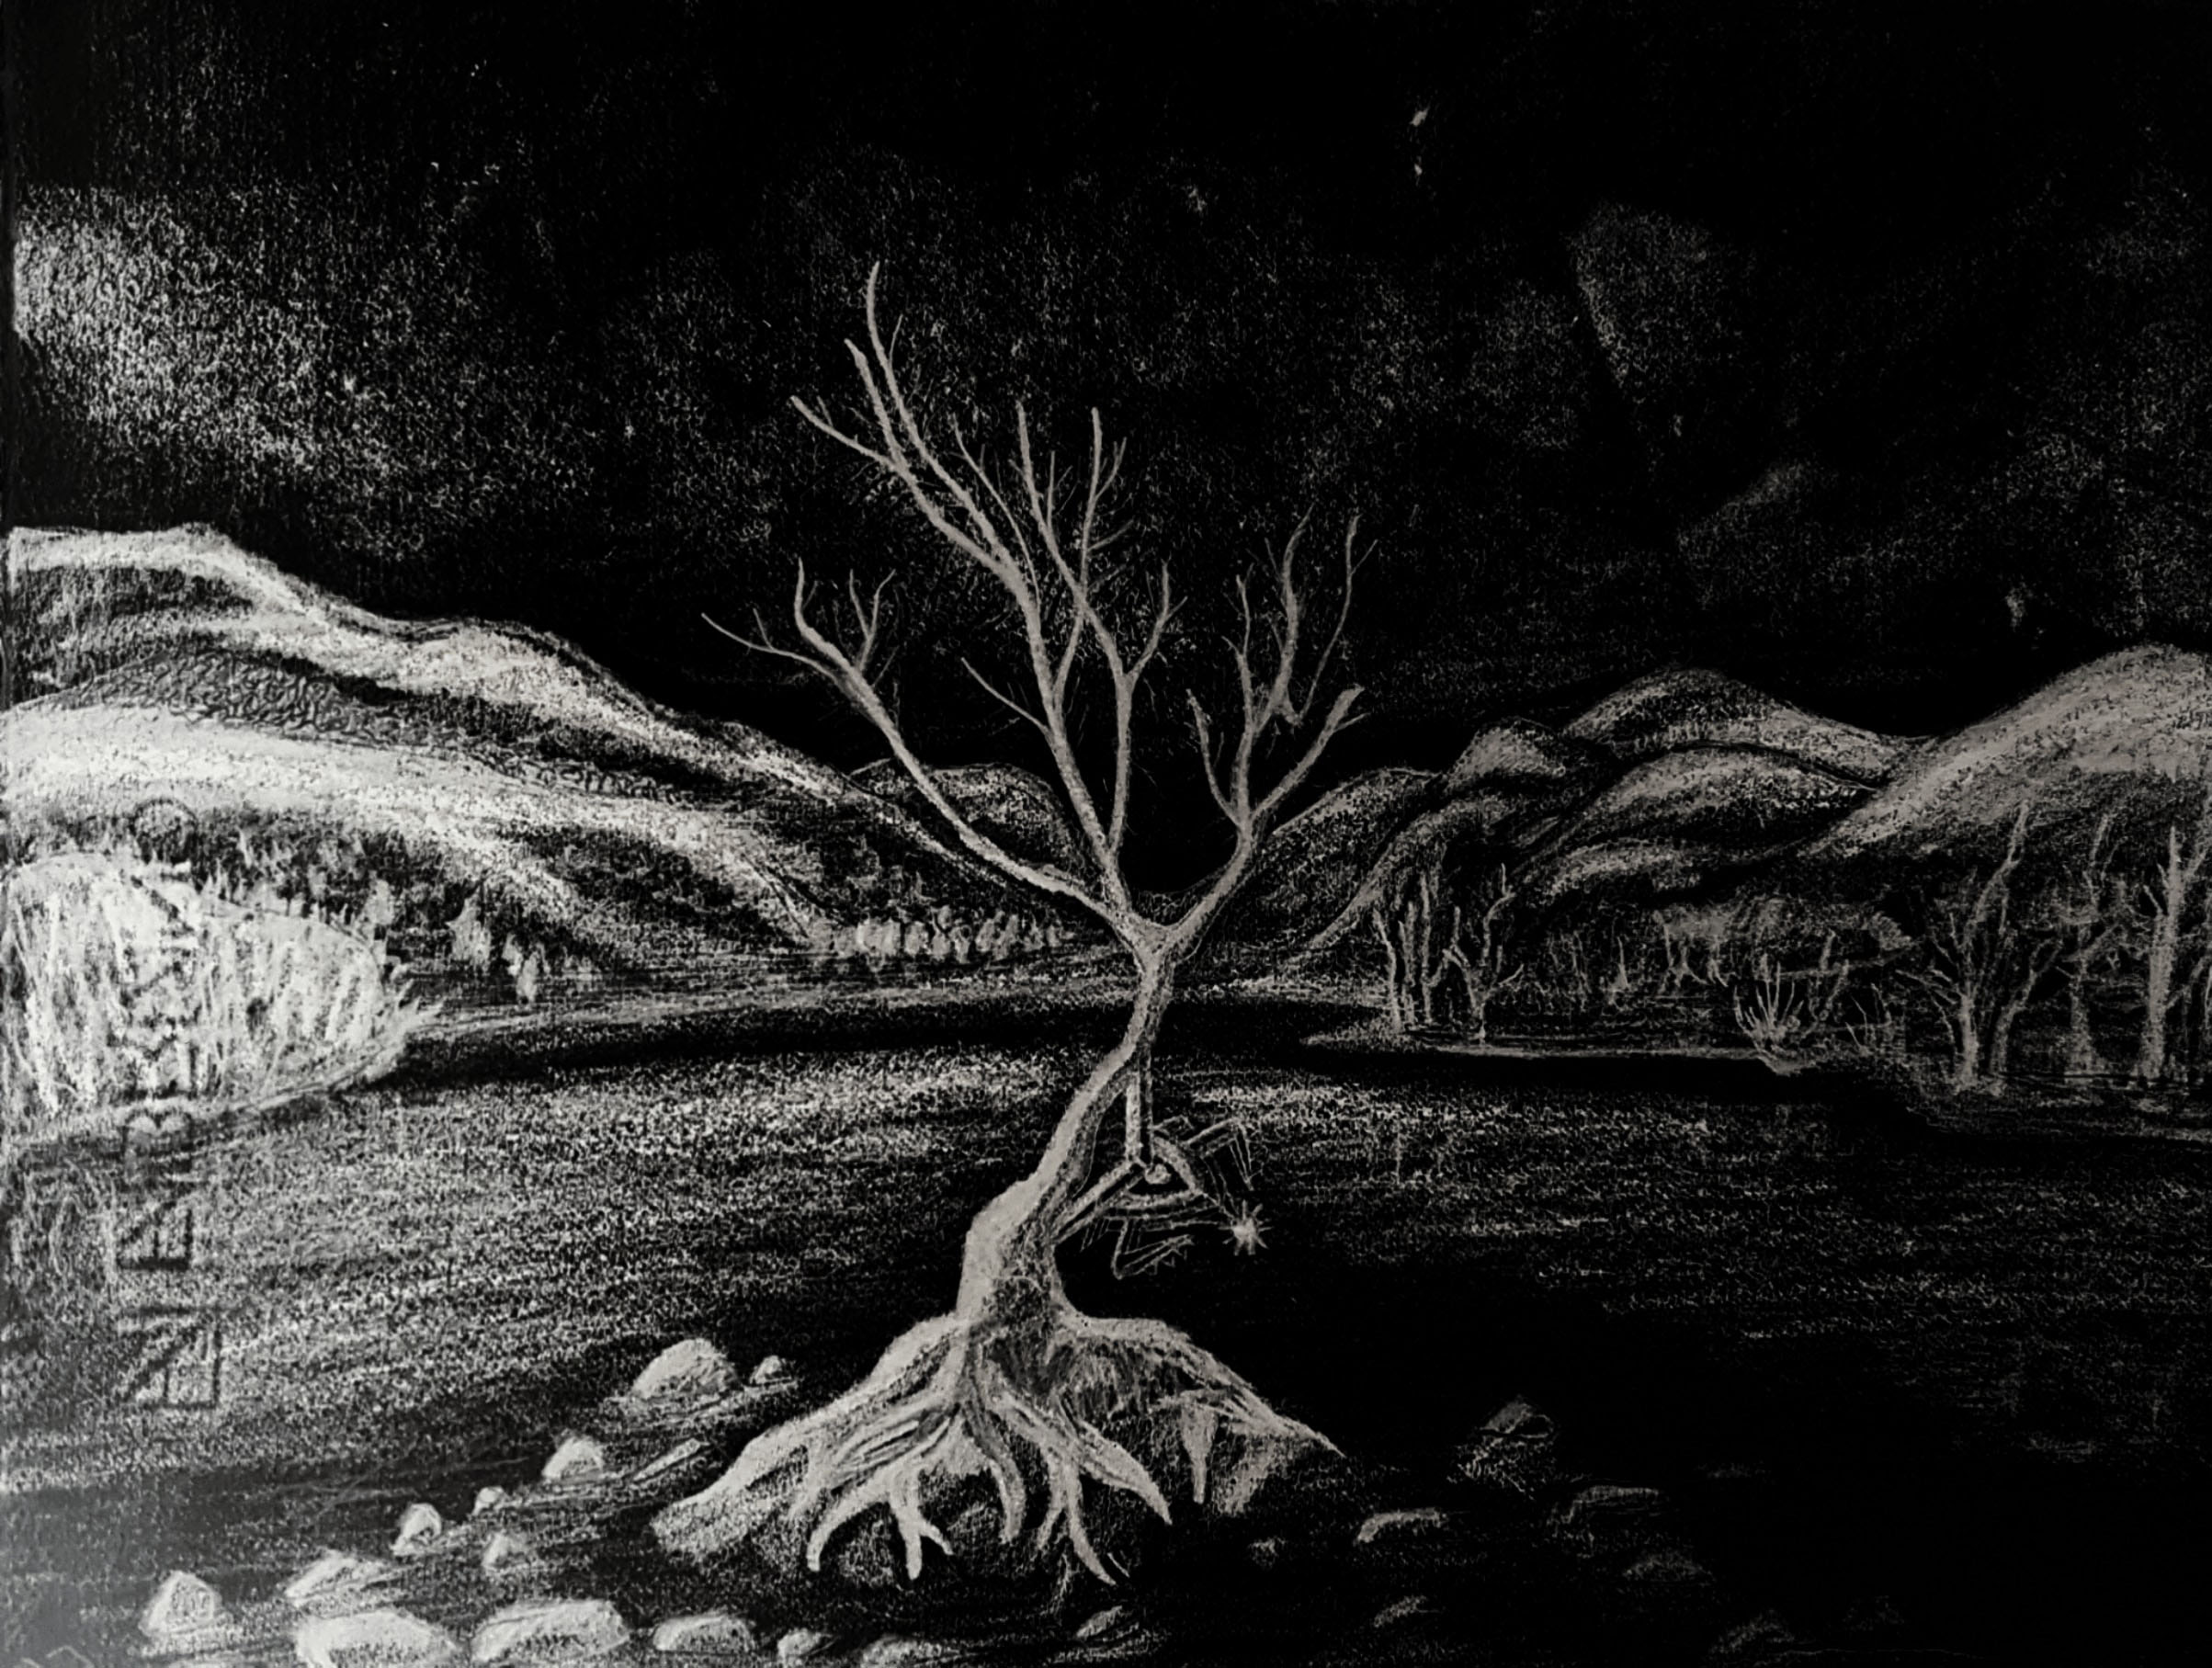 Monochromatic drawing on paper